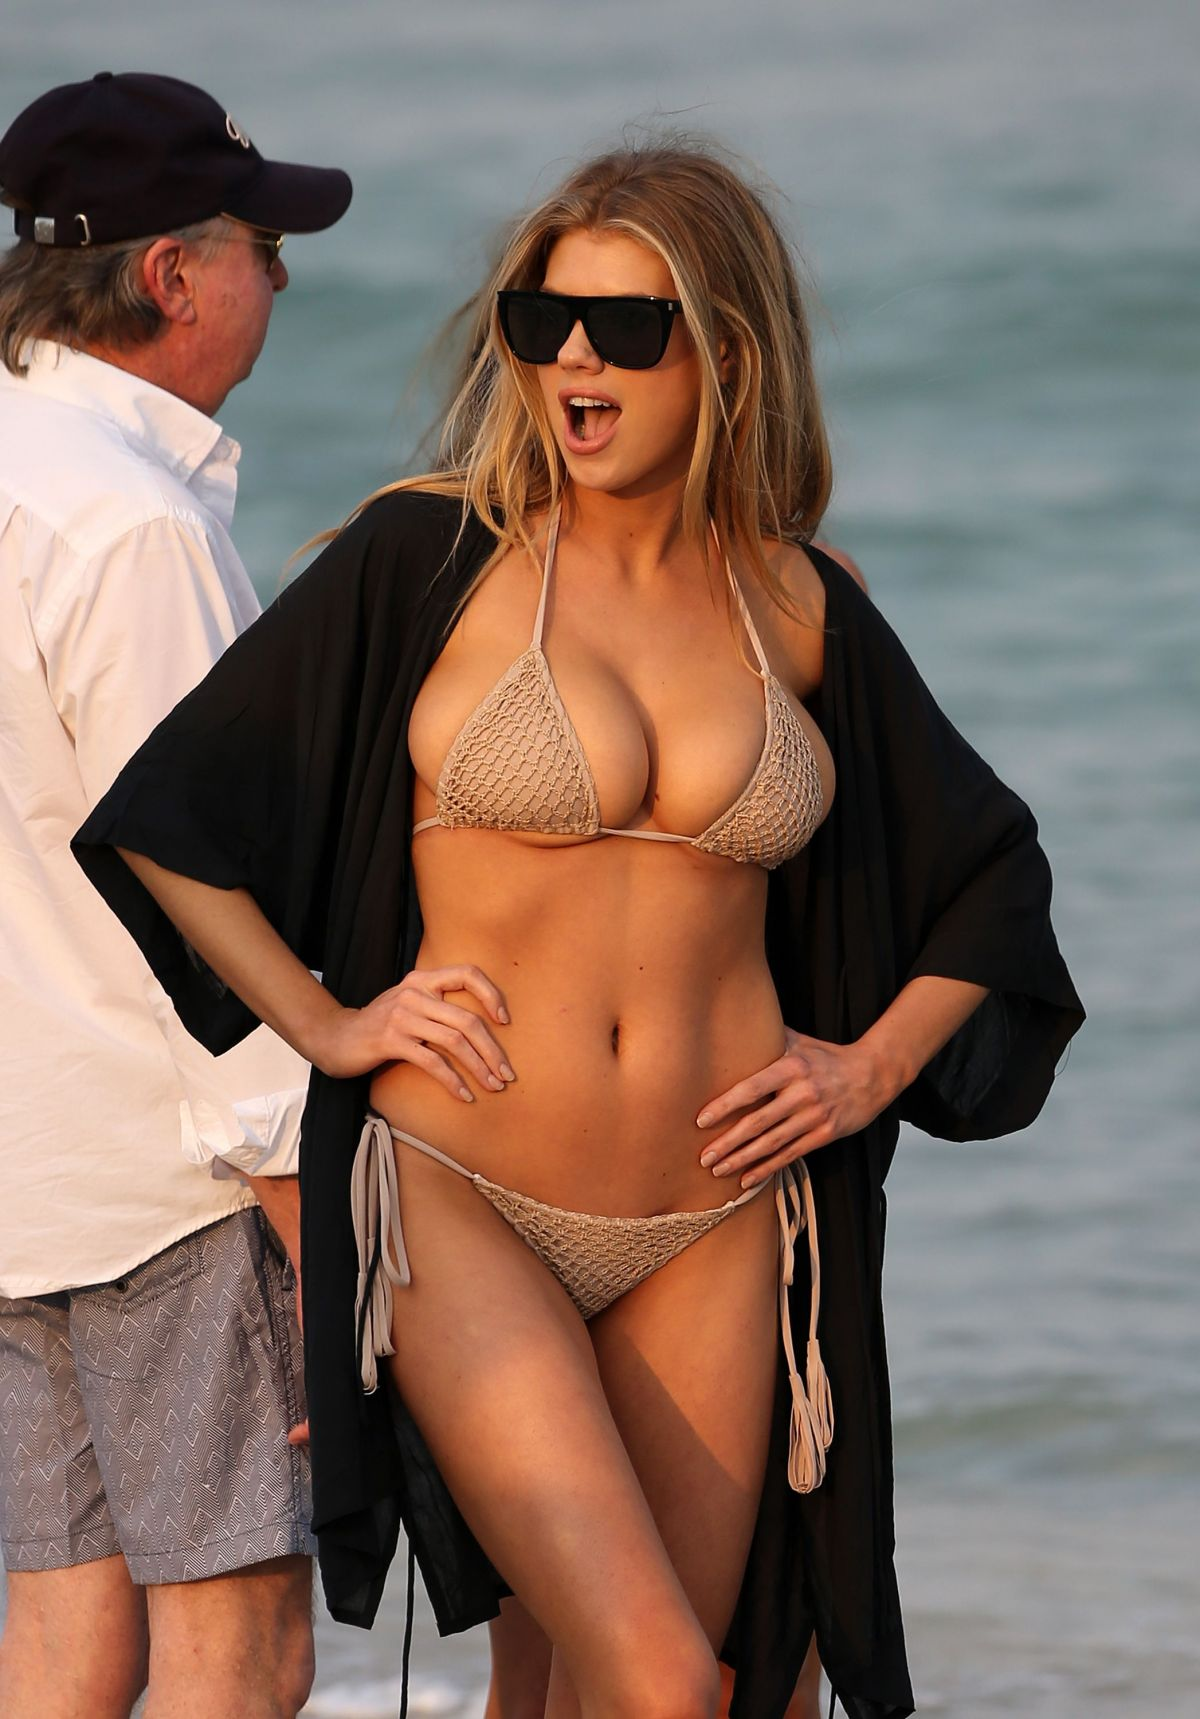 charlotte-mckinney-in-bikini-at-a-beach-in-miami-02-16-2017_24.jpg